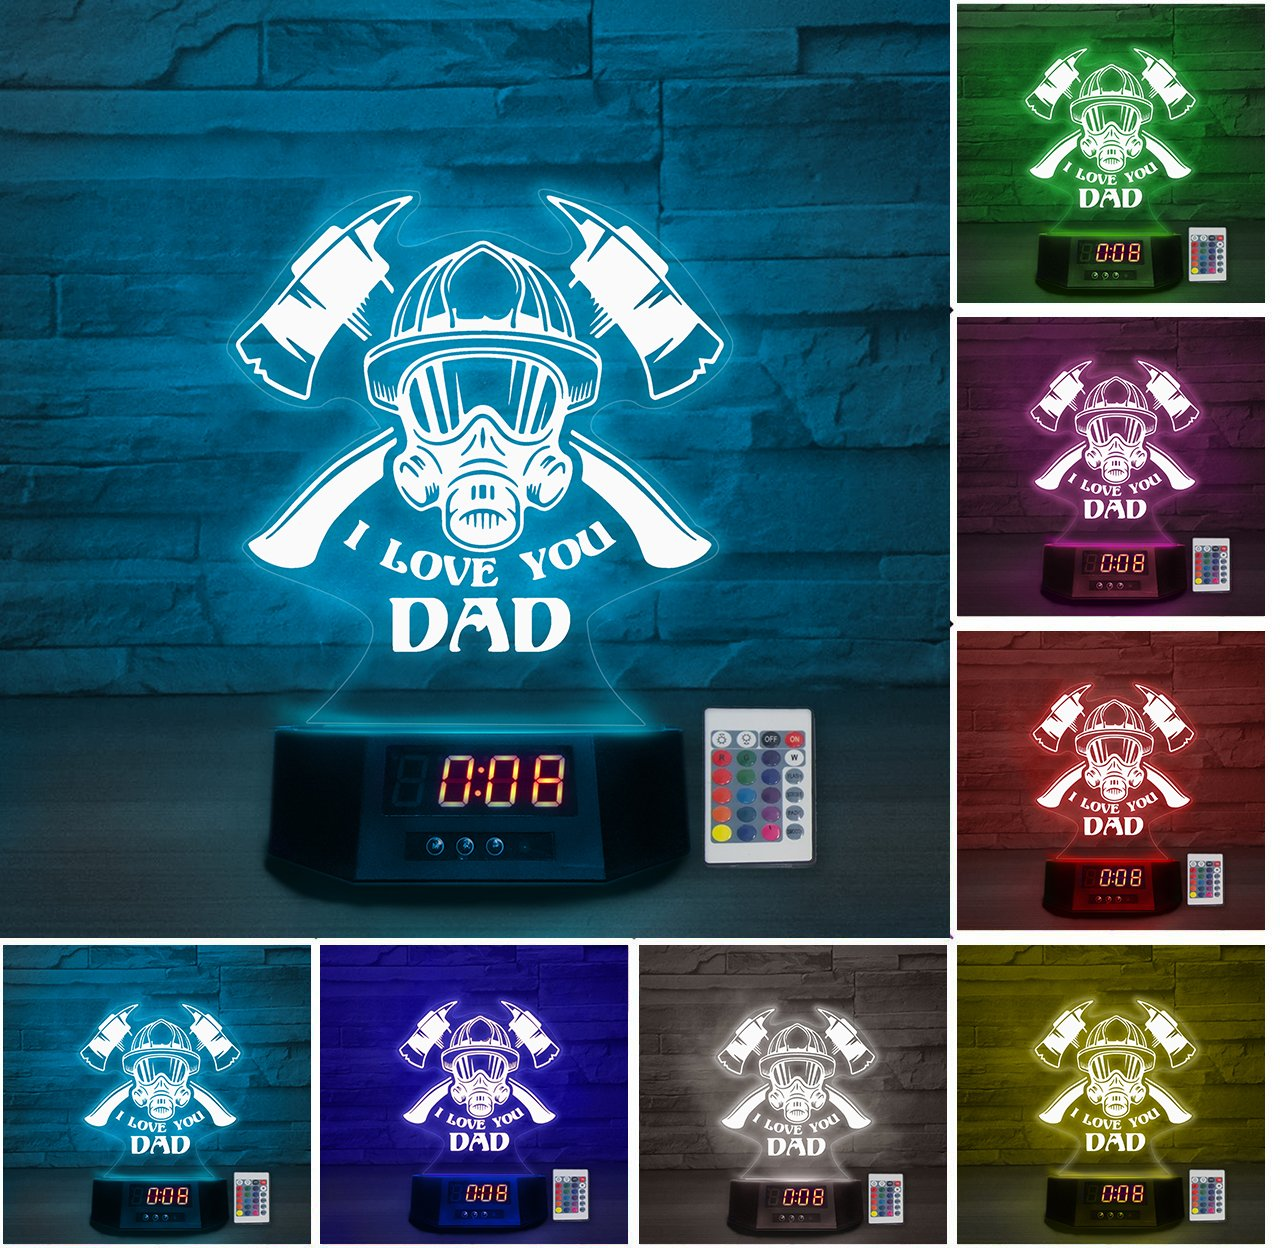 LED Lamp - I love you DAD - Firefighter ATDK190401c